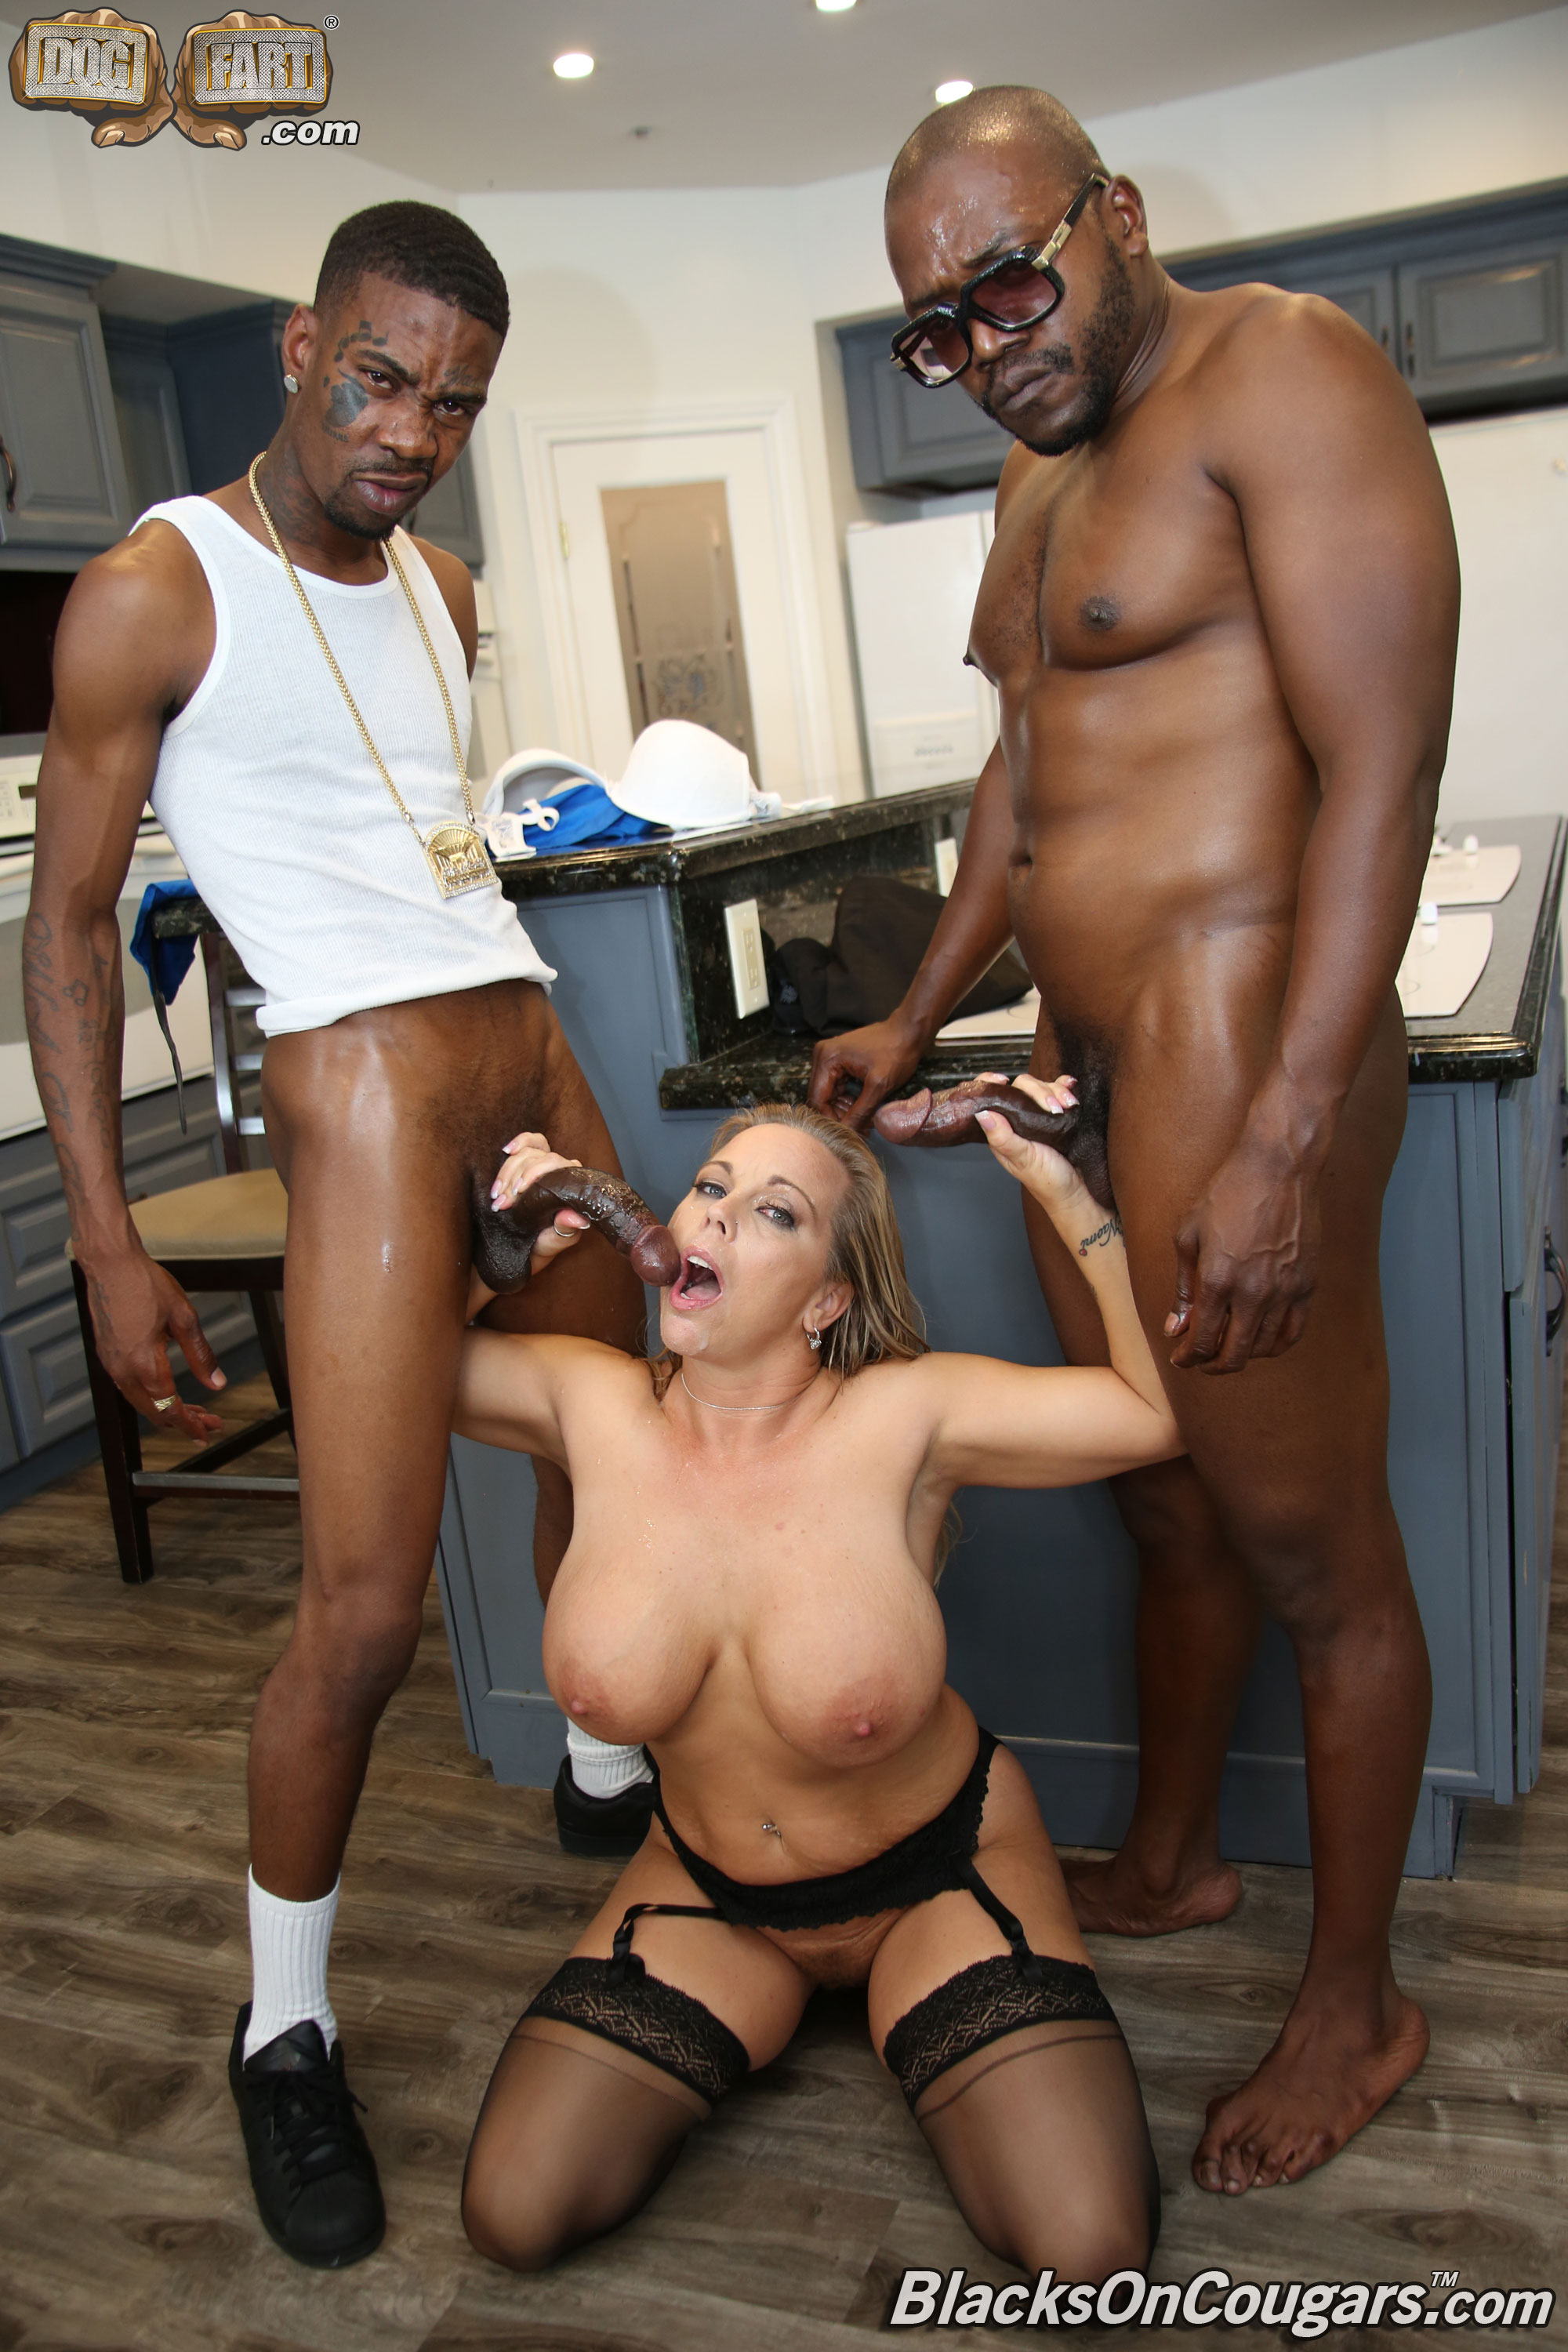 Dogfart 'Amber Lynn Bach - Blacks On Cougars' starring Amber Lynn Bach (photo 28)